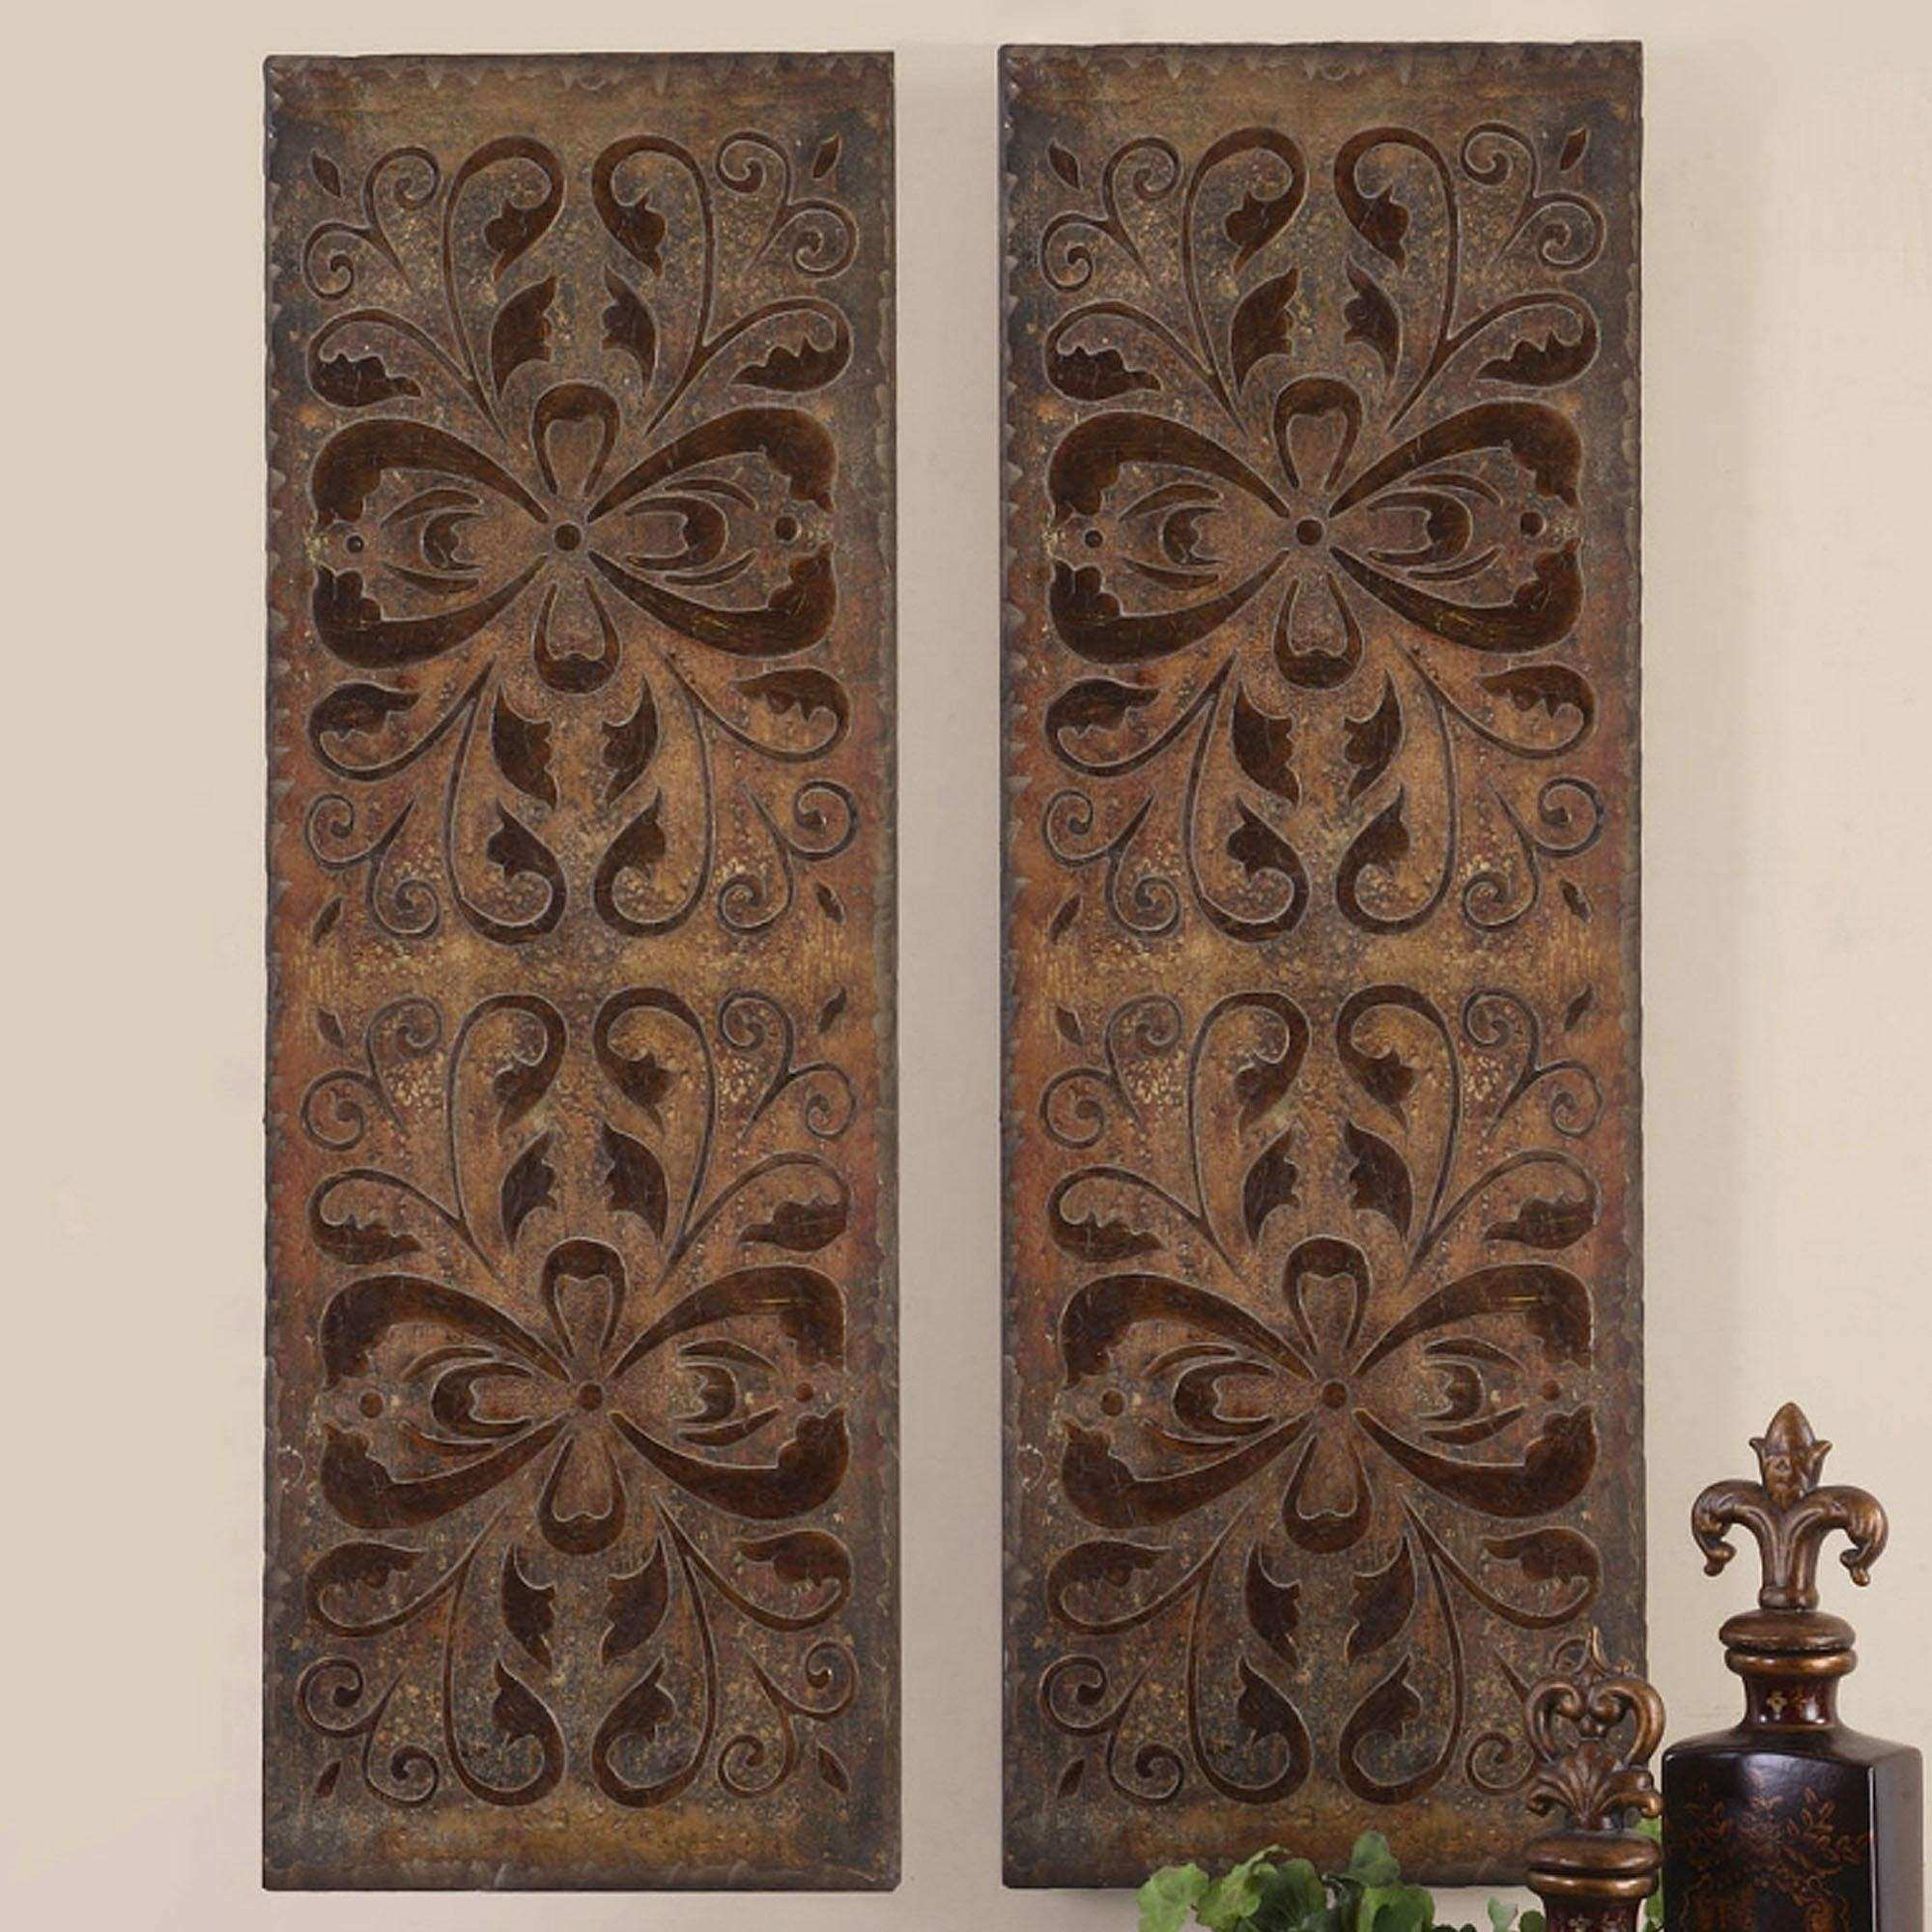 20 s Wood Carved Wall Art Panels